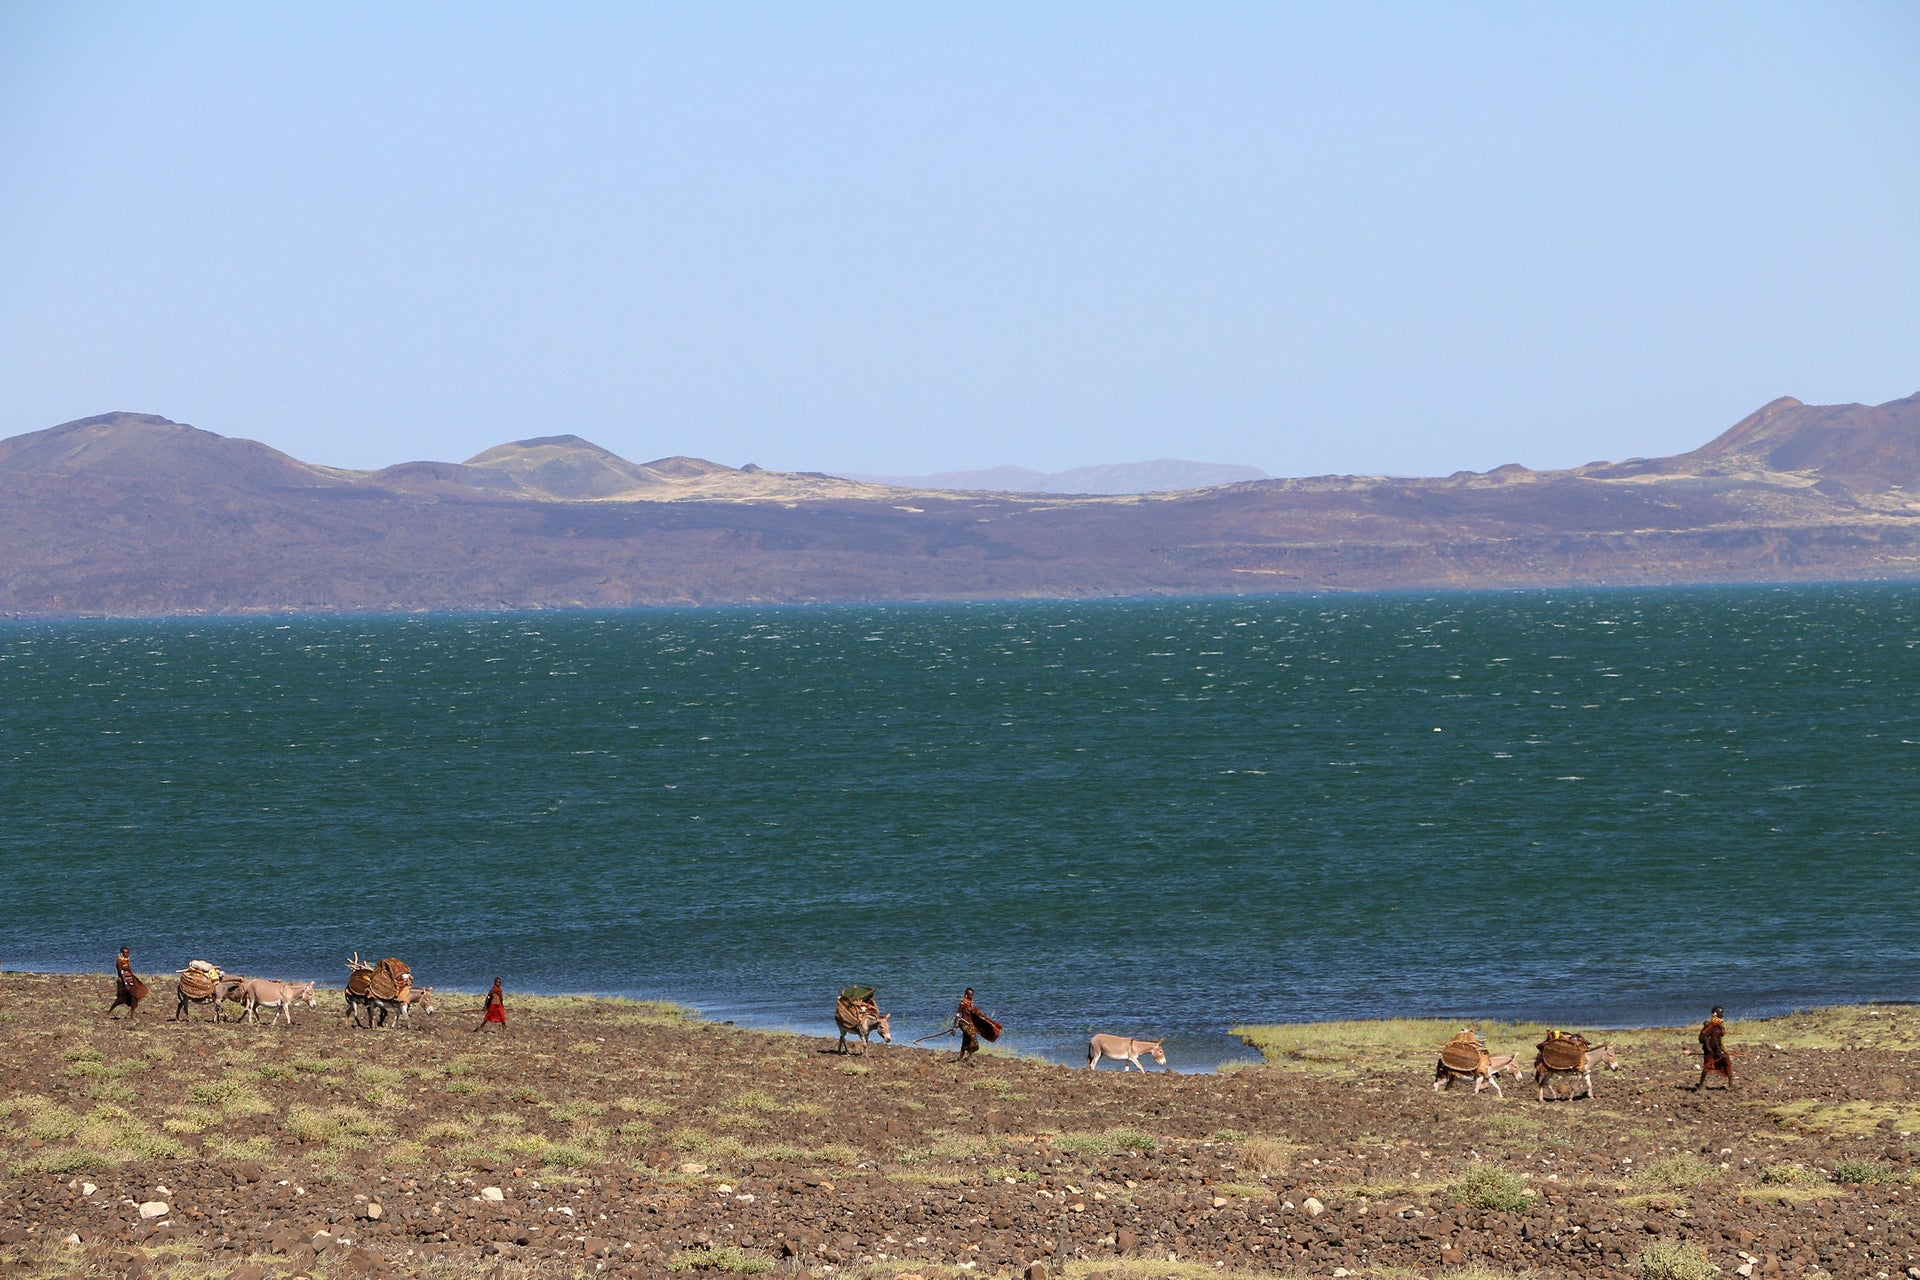 Lake Turkana: Photo shows hills behind the lake, and some pastoralists and their animals in front of it. The hills look purple-red, the lake blue-green and a little choppy.